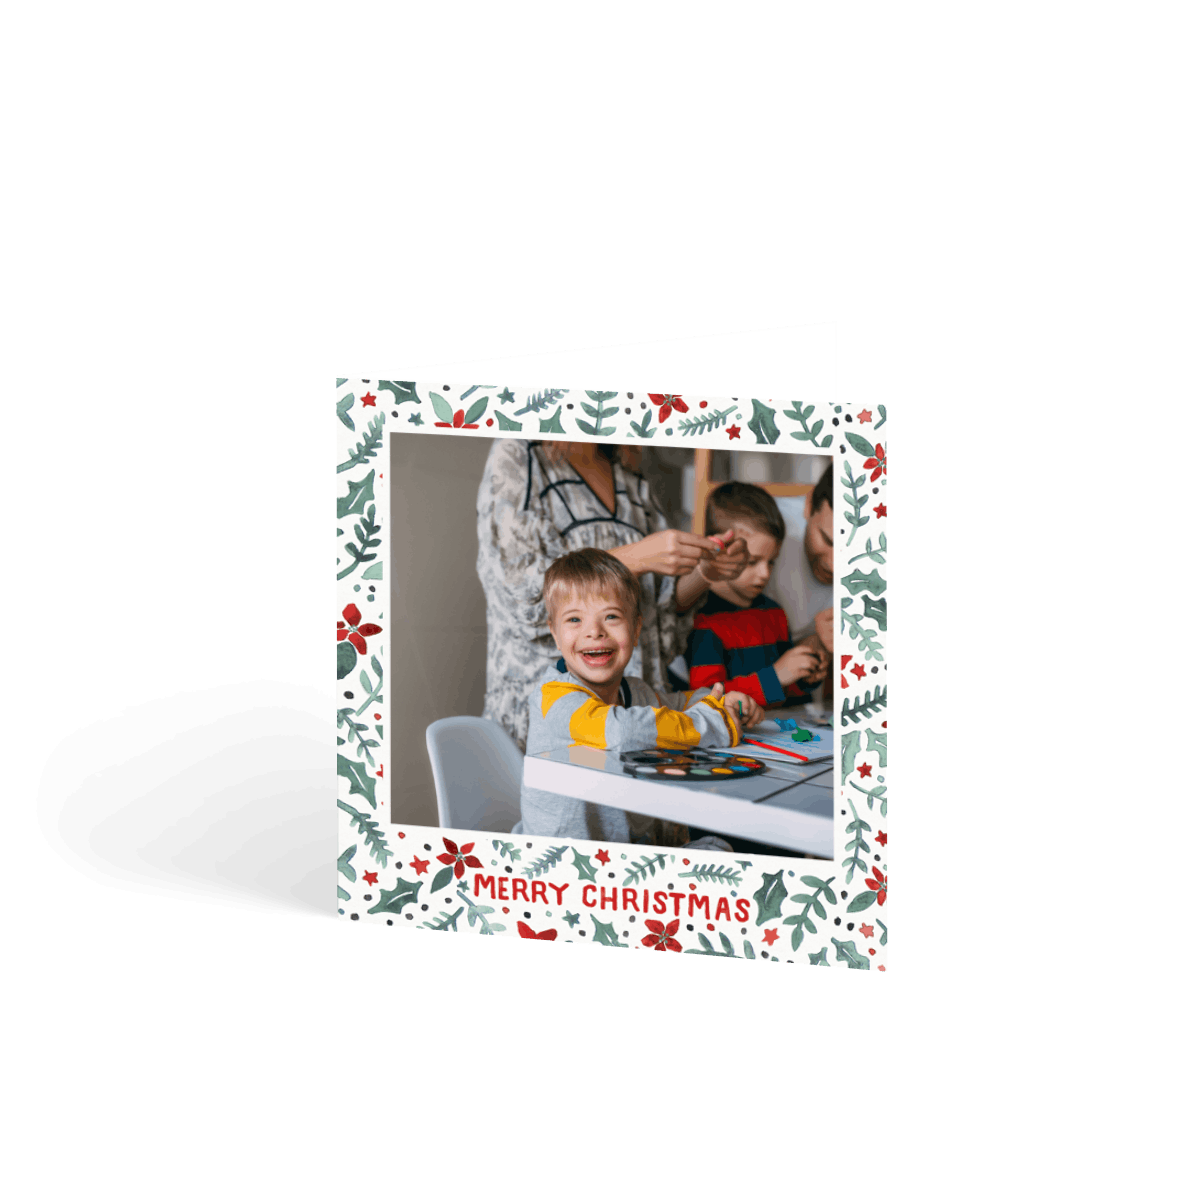 Https%3a%2f%2fwww.papier.com%2fproduct image%2f42353%2f16%2fpoinsettia scatter photo 10840 front 1542363922.png?ixlib=rb 1.1